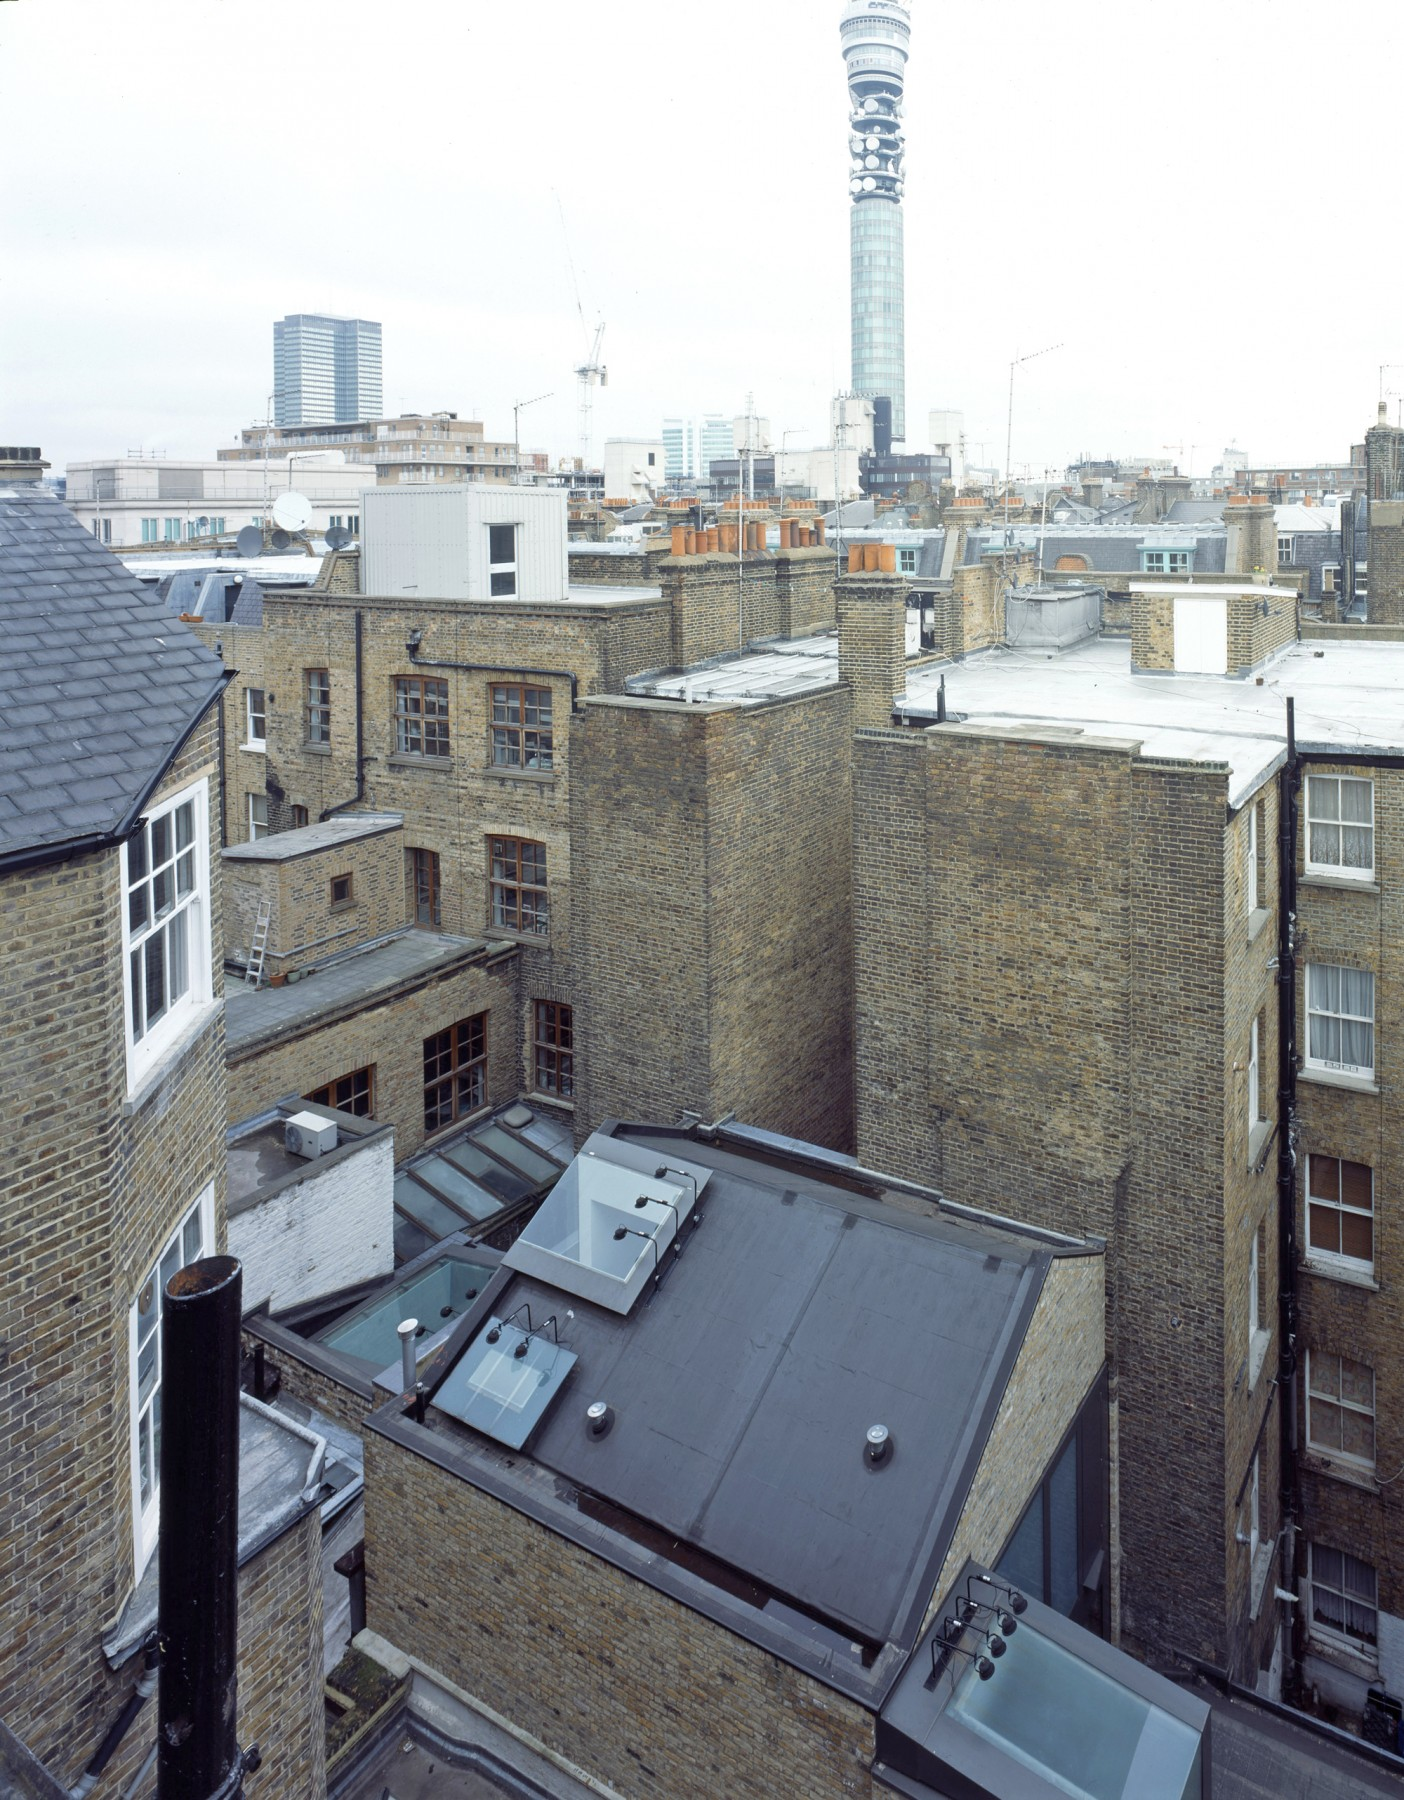 Anderson-House-contemporary-modern-London-residential-home-Jamie-Fobert-Architects-4